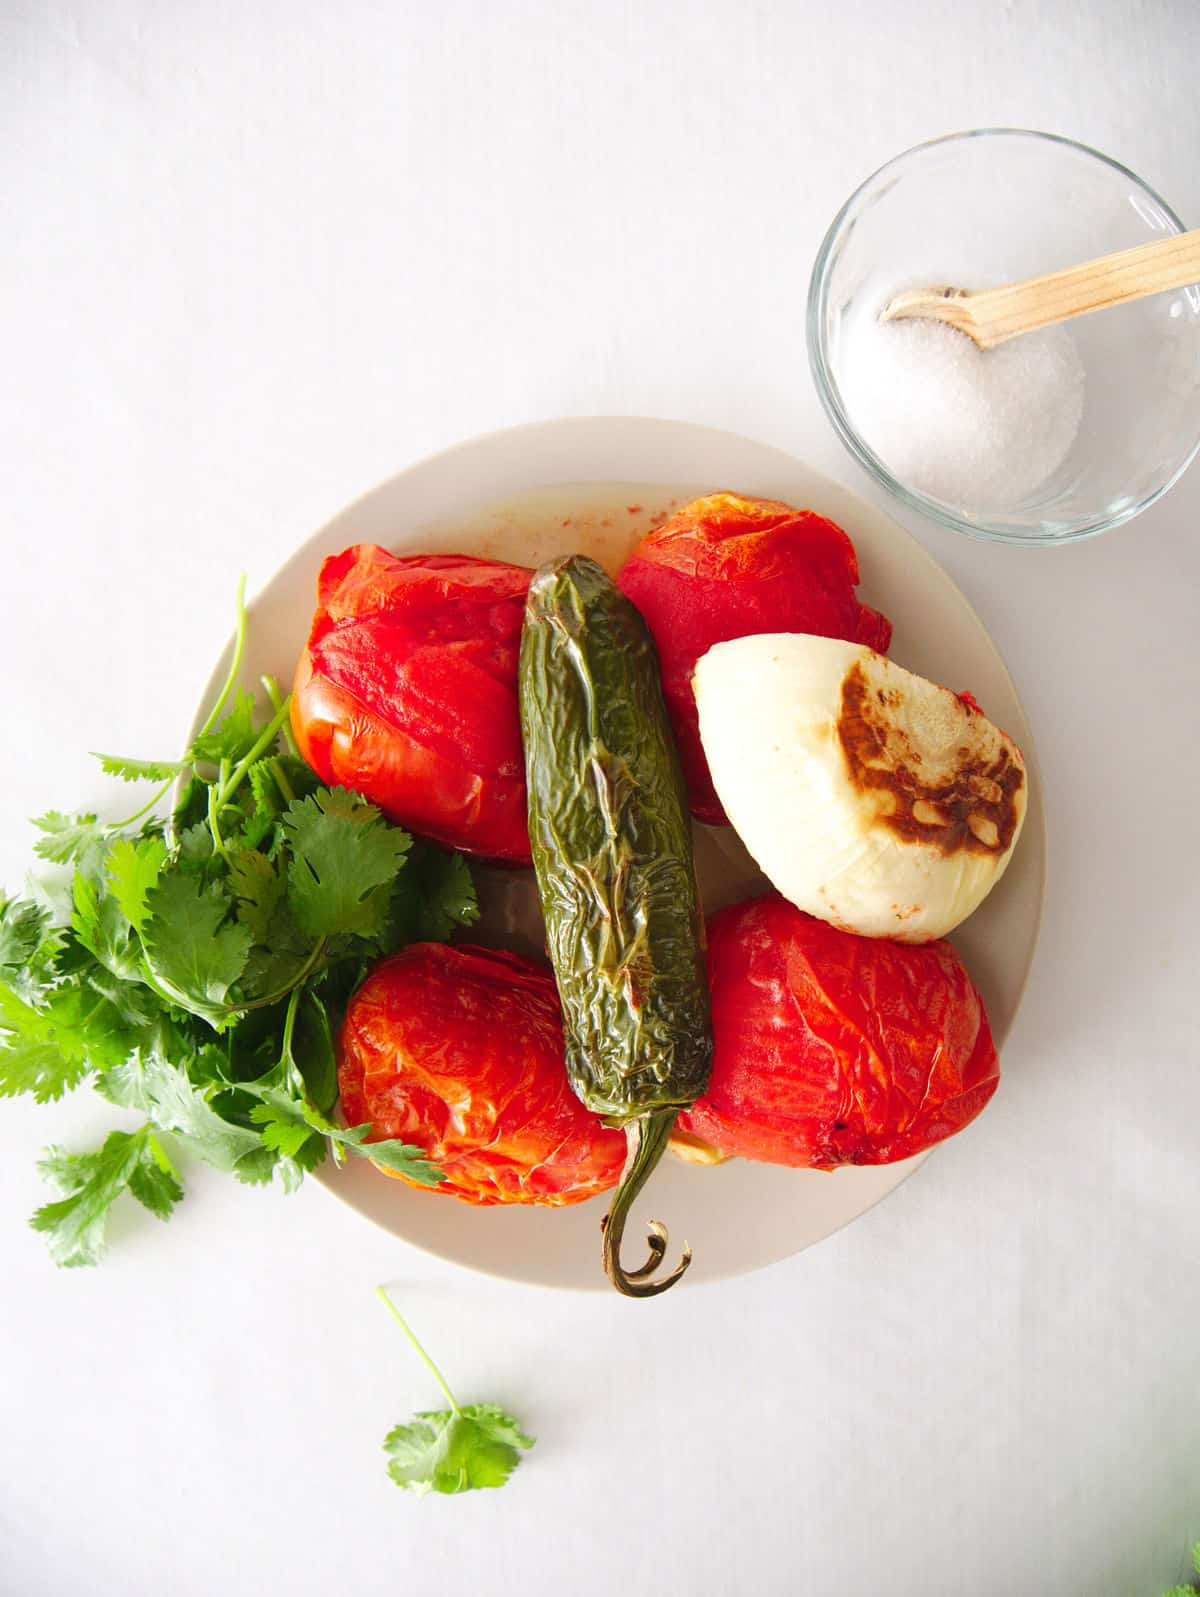 Restauant Style Salsa with Roasted Tomatoes